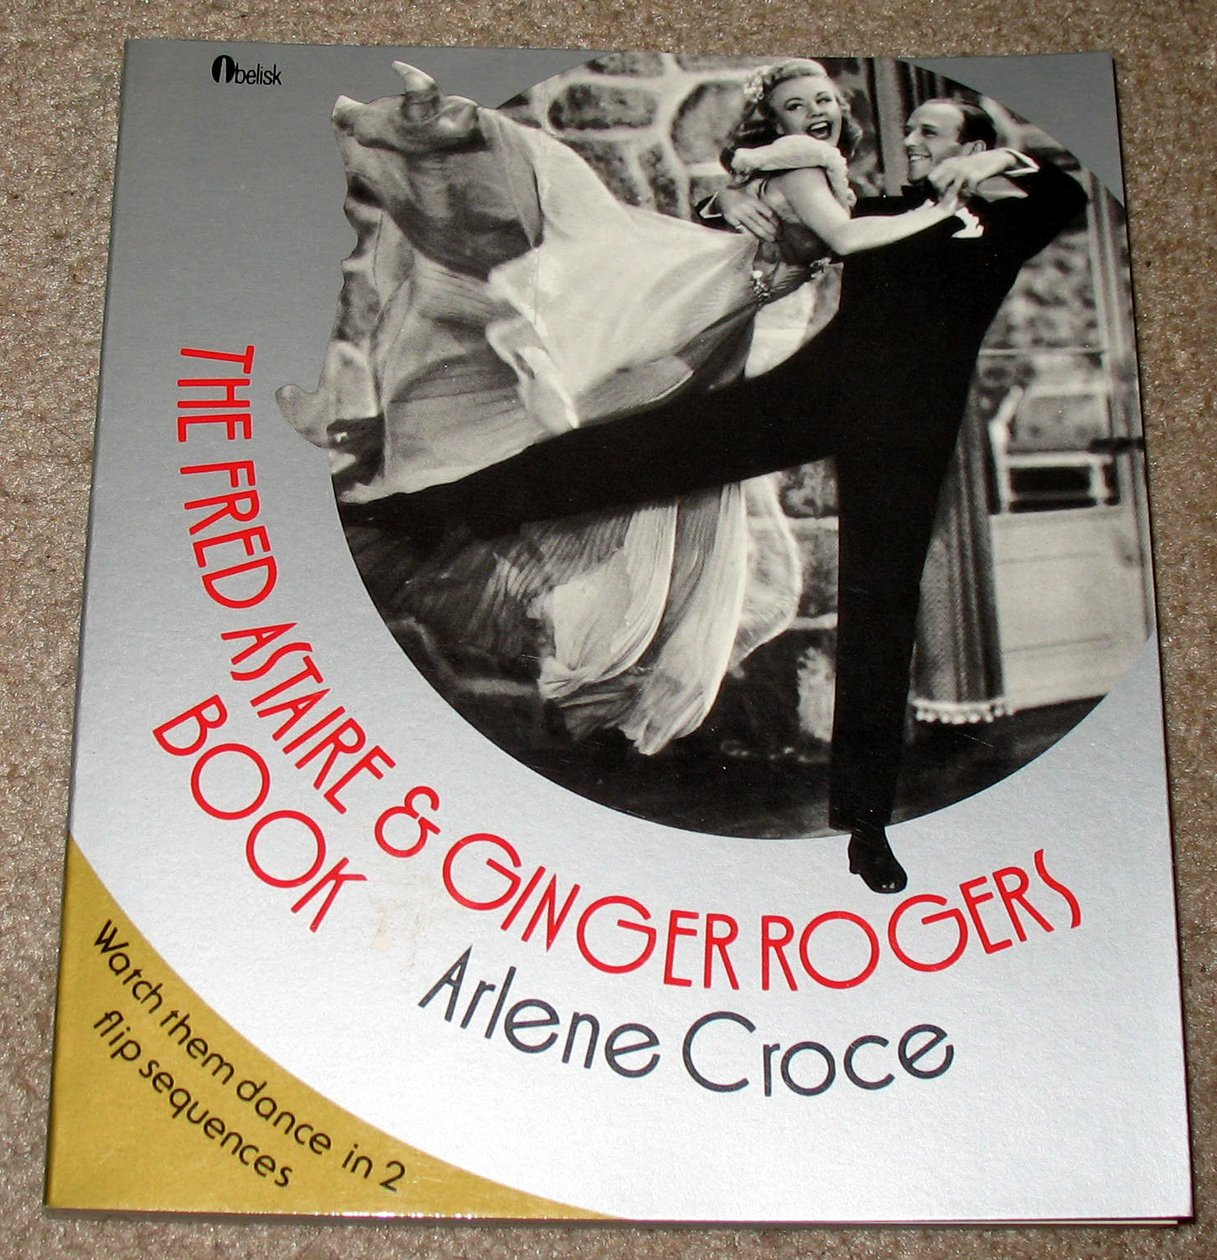 The Fred Astaire & Ginger Rogers Book, Croce, Arlene